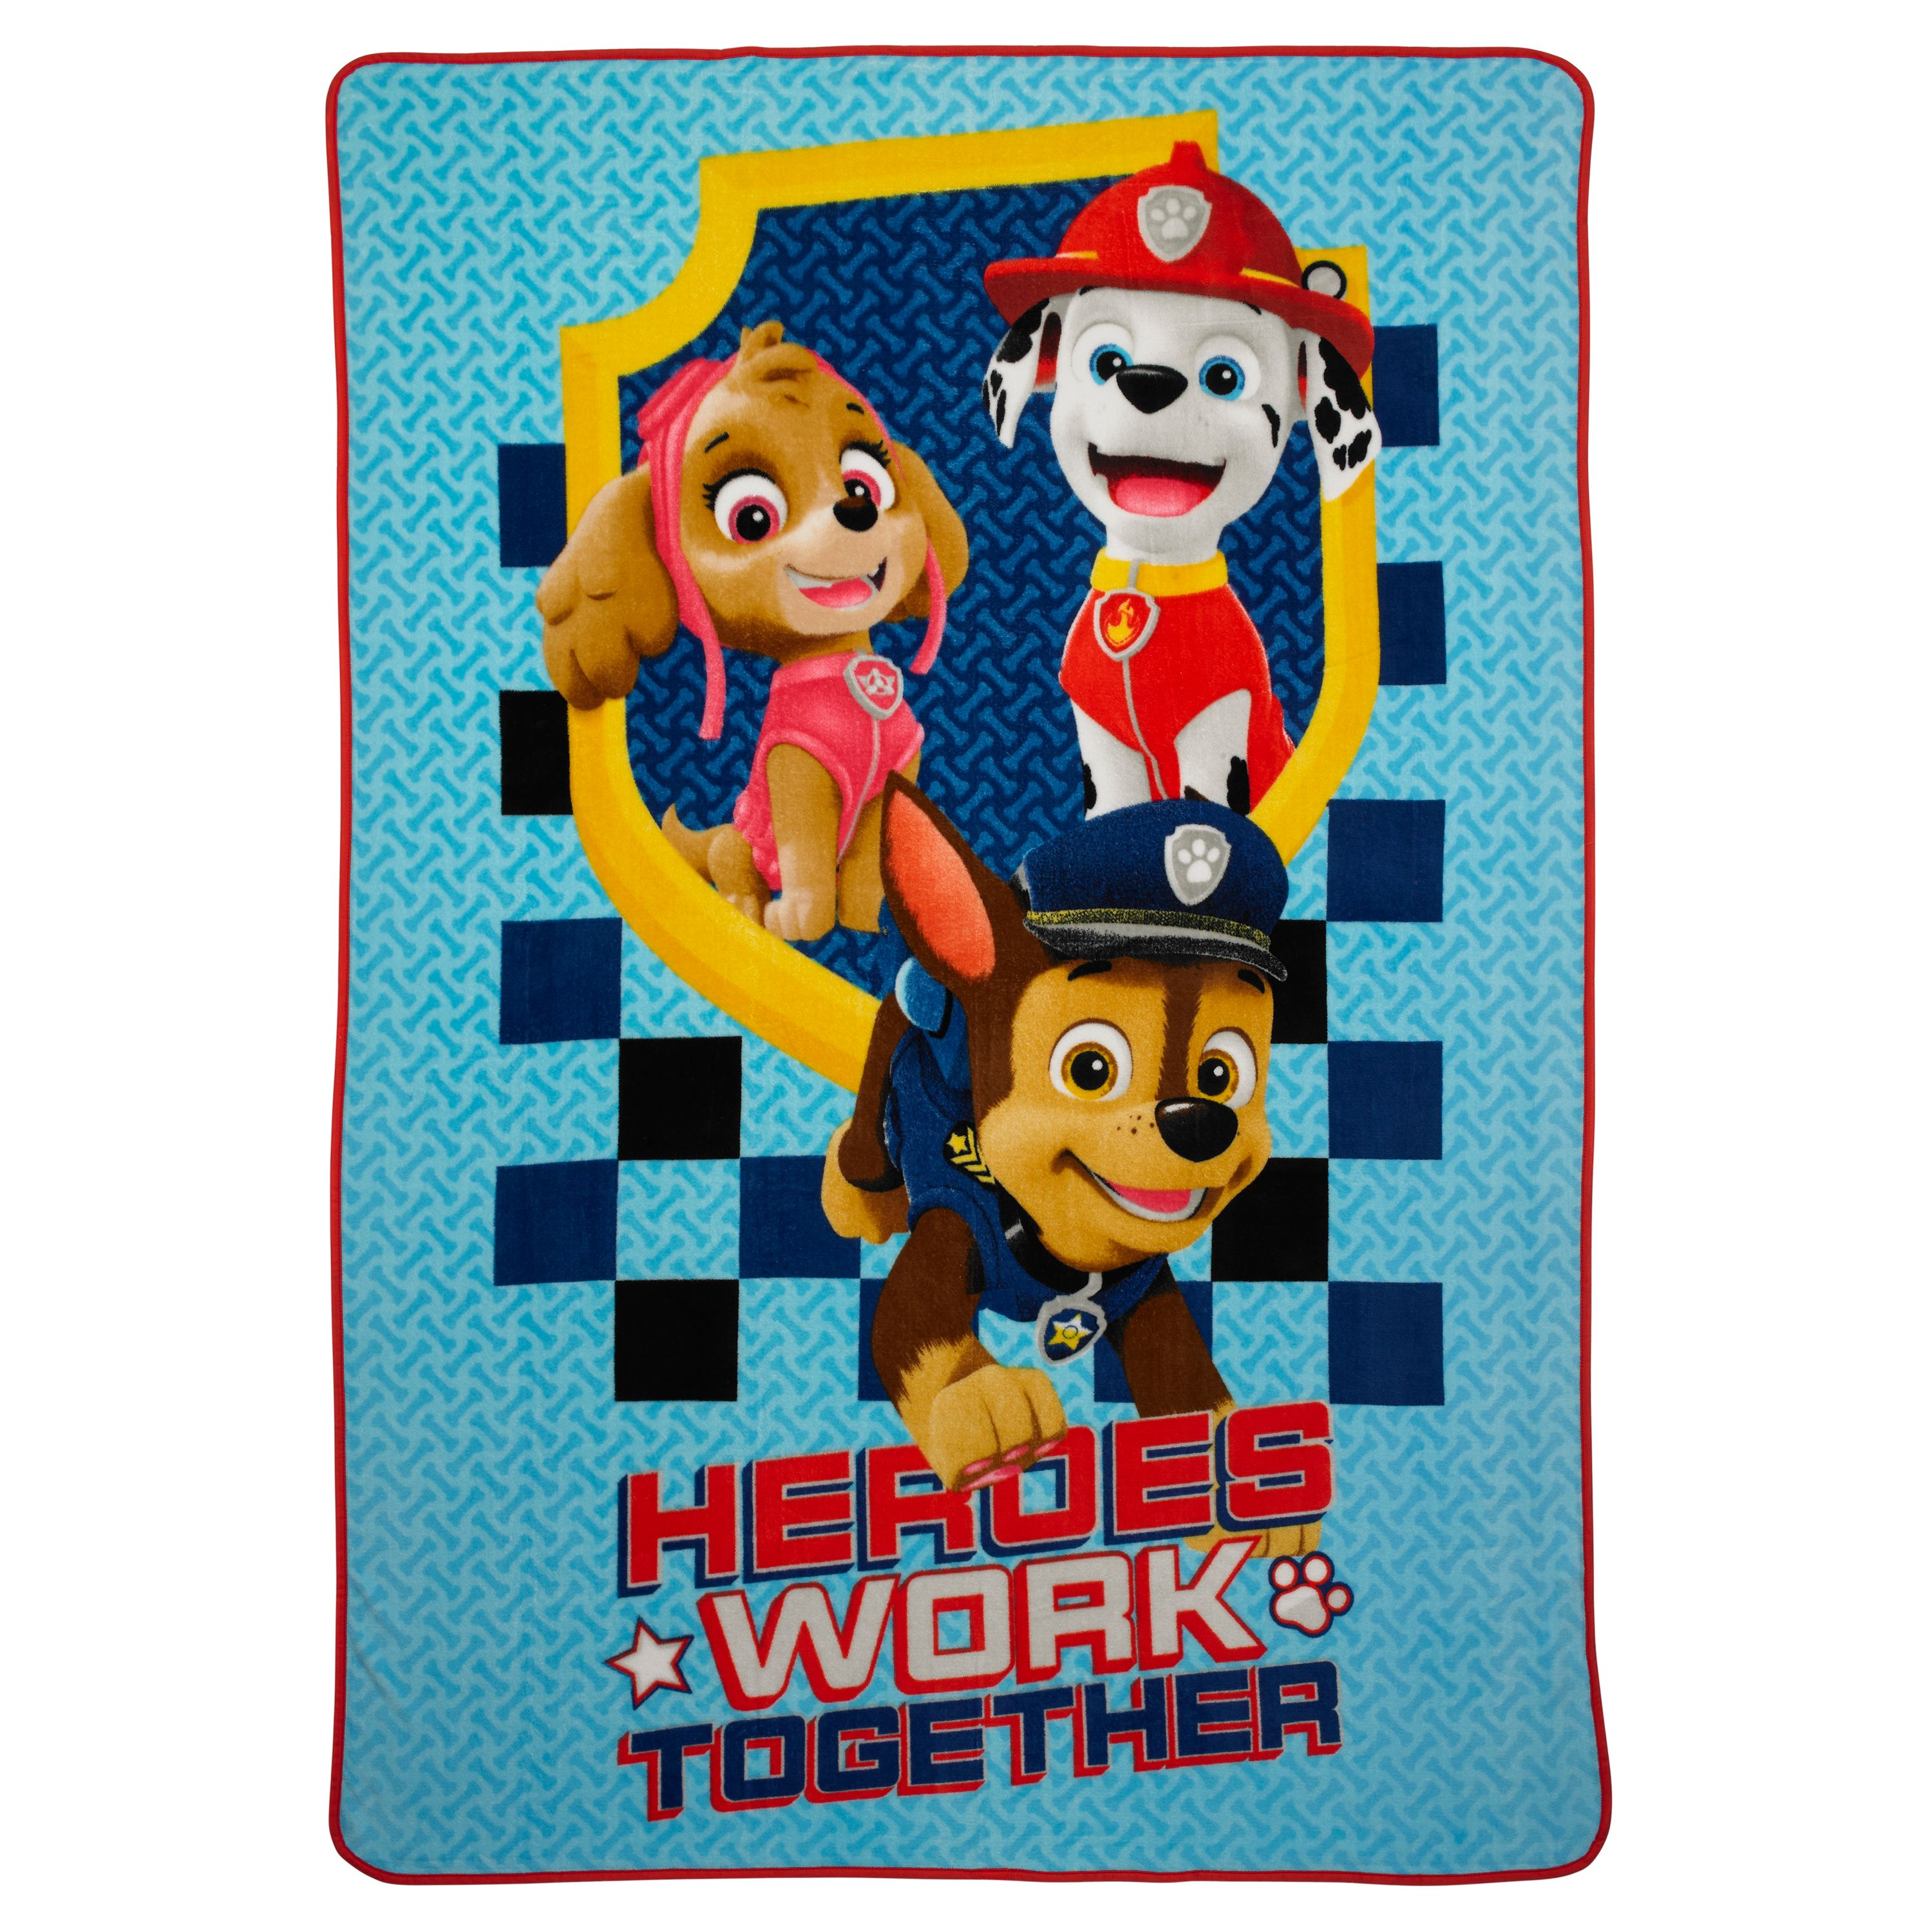 "Paw Patrol Heroes Work Together 62"" x 90"" Kids Bedding Blanket, 1 Each"